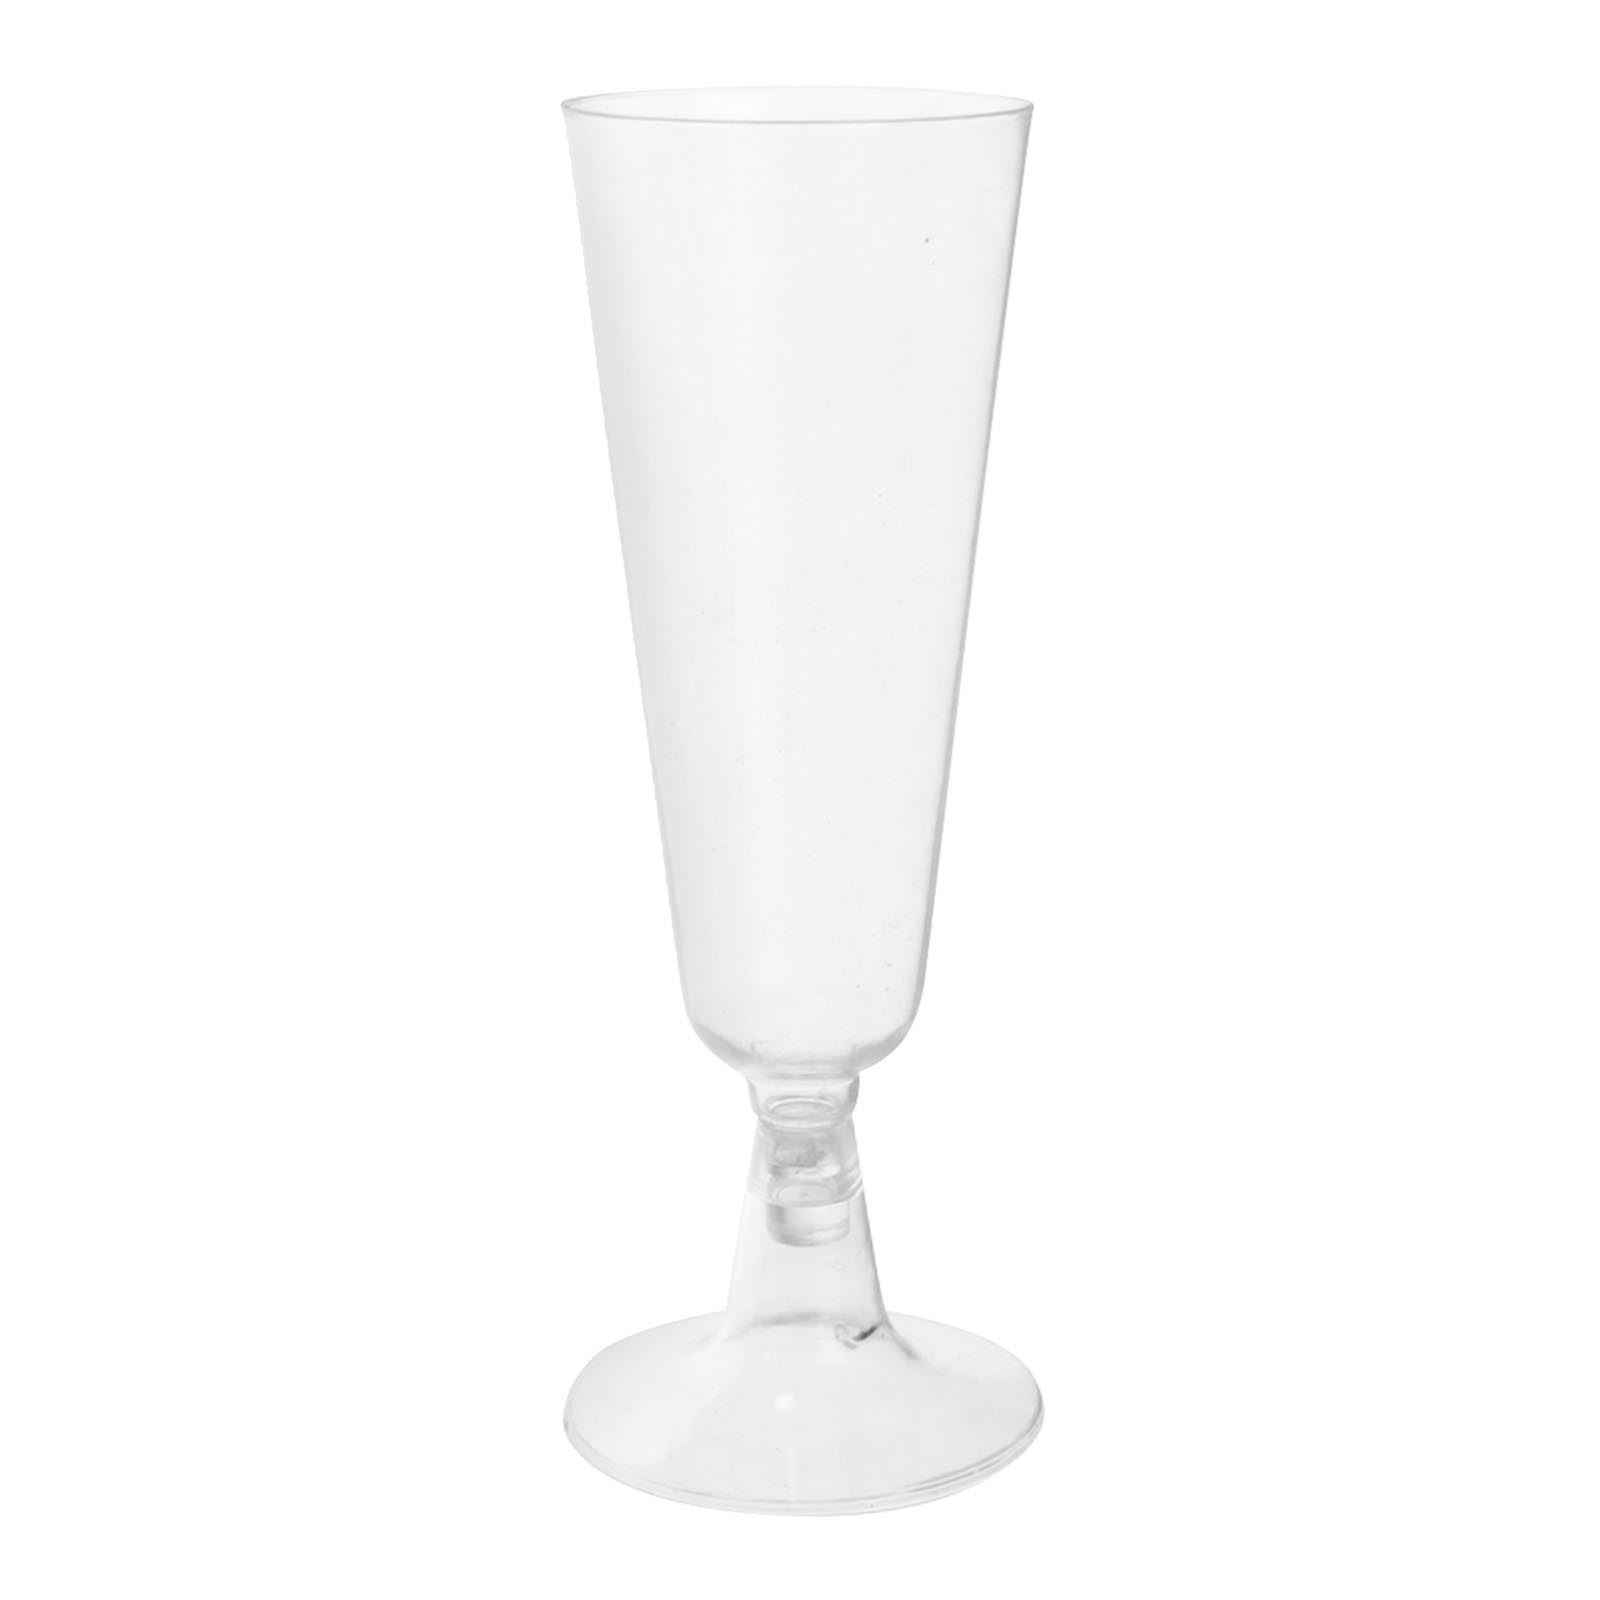 Disposable plastic wine glasses canape dishes dessert for Disposable canape dishes